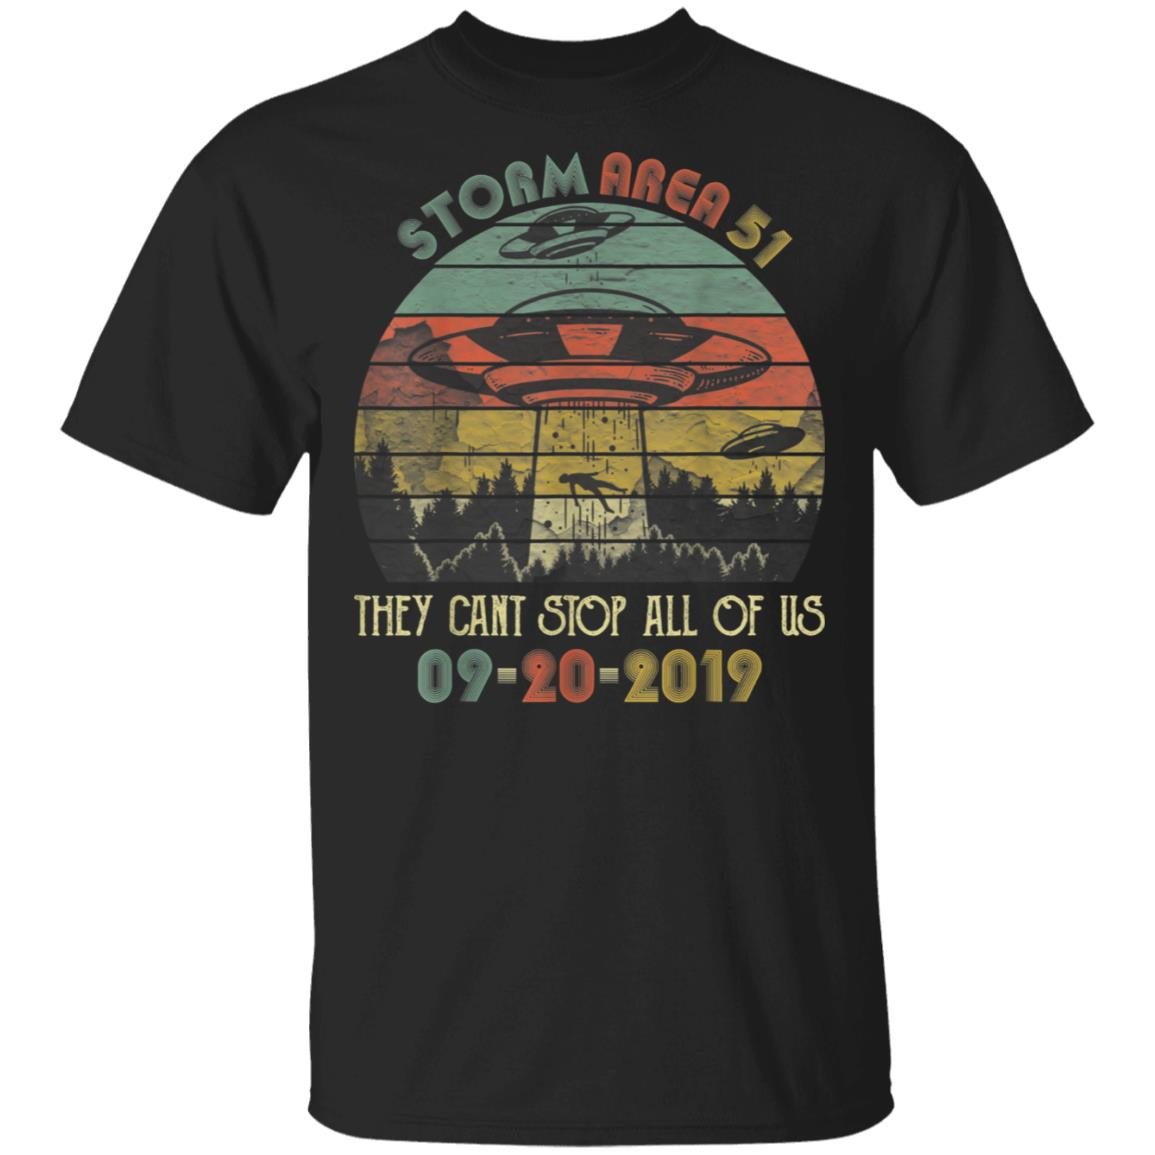 Storm Area 51 They Can't Stop All Of Us Vintage Alien Shirt